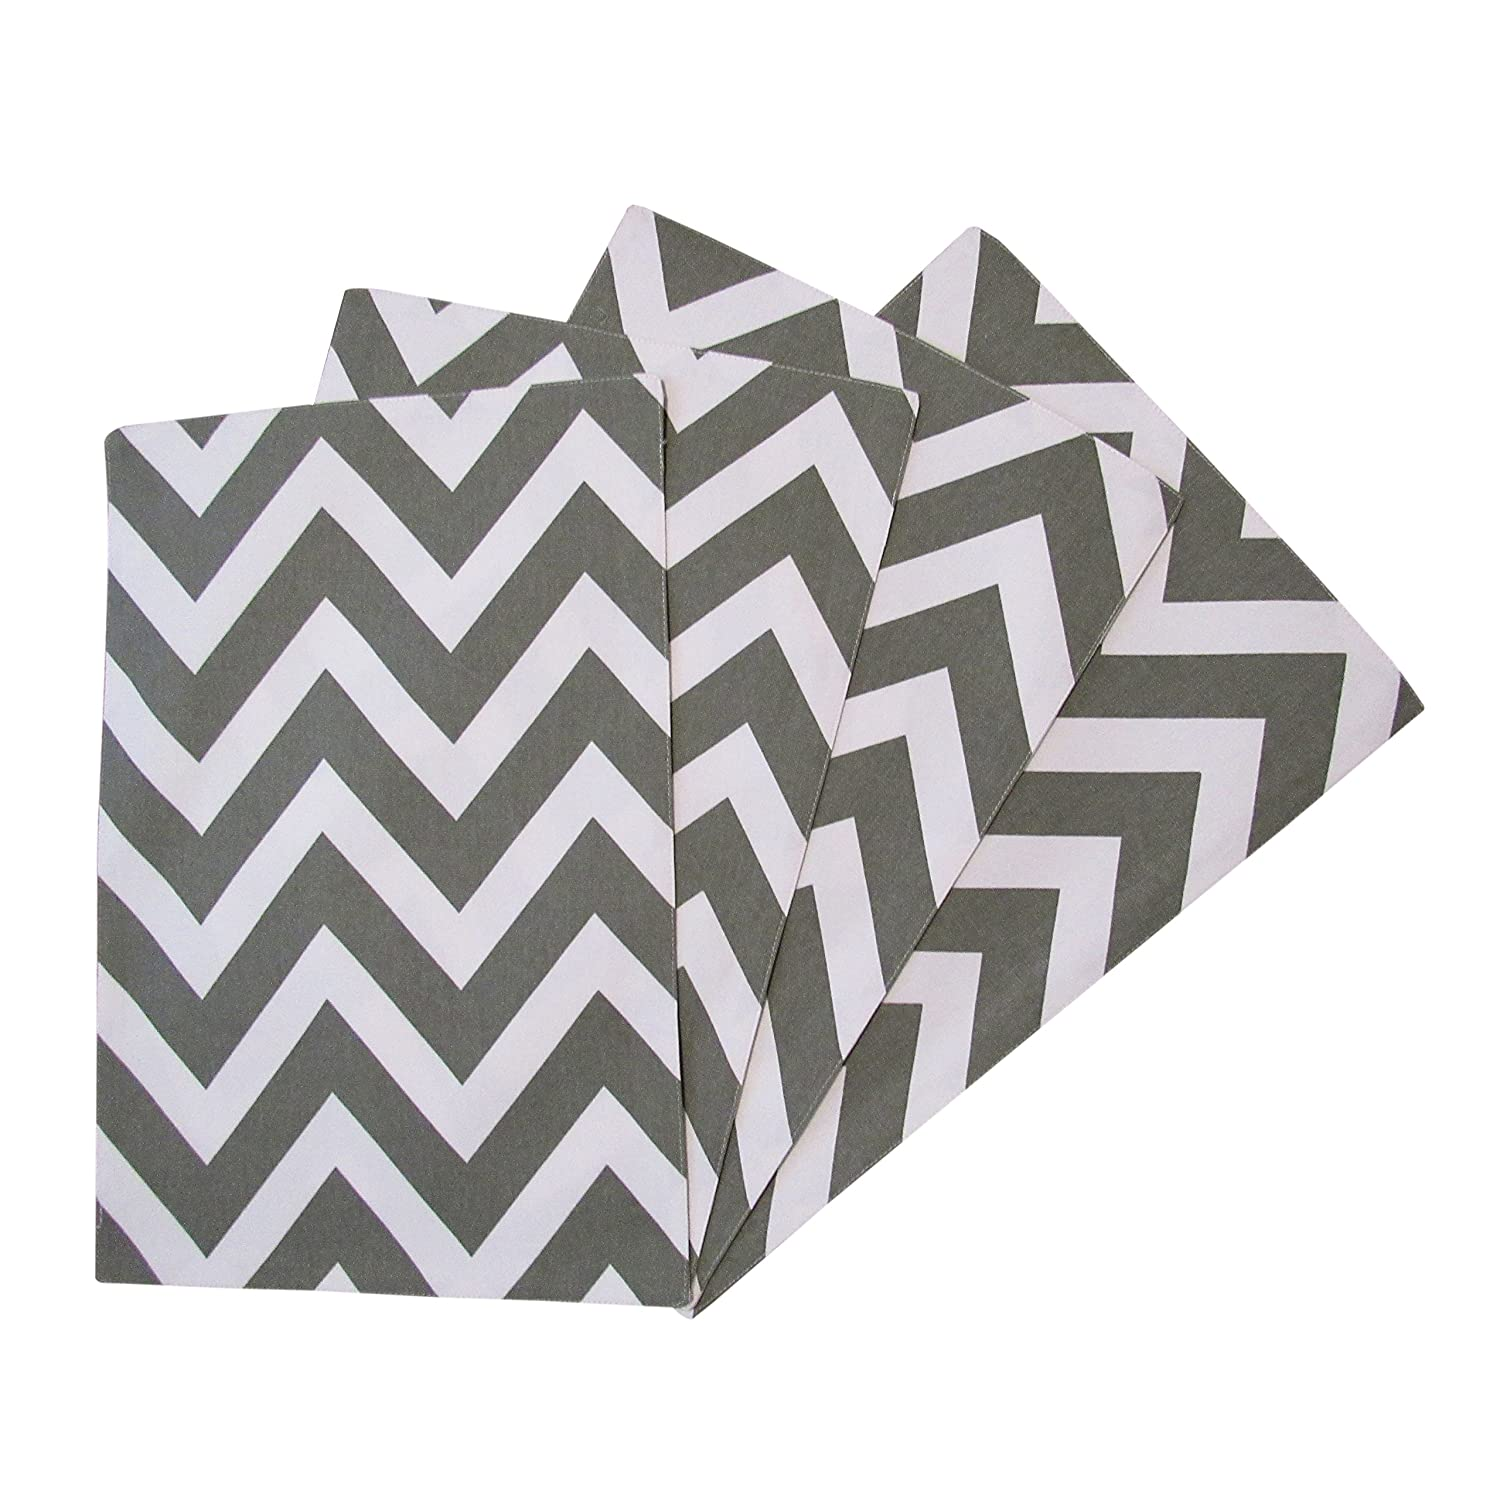 Crabtree Collection Dark Gray Chevron Table Placemat Set by The Top 4-Pack Place Mats from 100% Cotton  Fresh, Trendy Design & Eye-Catching Colors  Dining Table Accessory for Home, Restaurant, Café